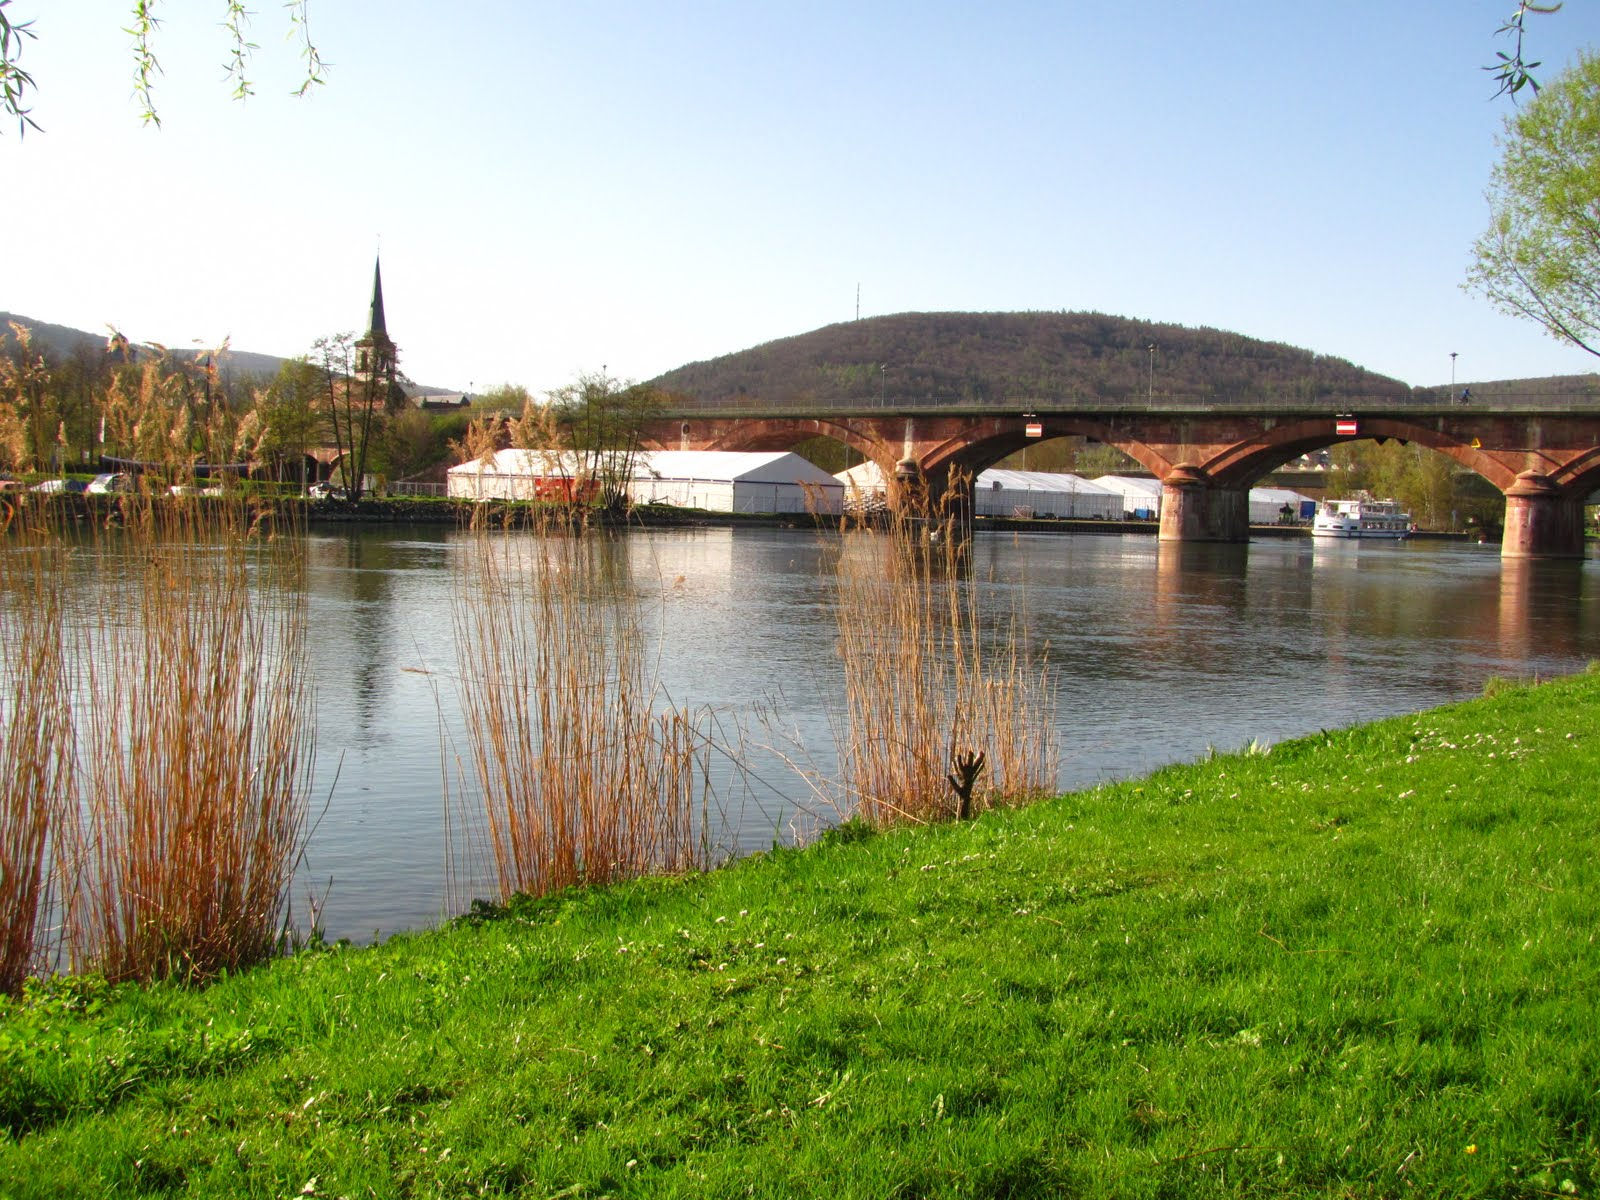 With Love From Lohr: Lohr Am Main